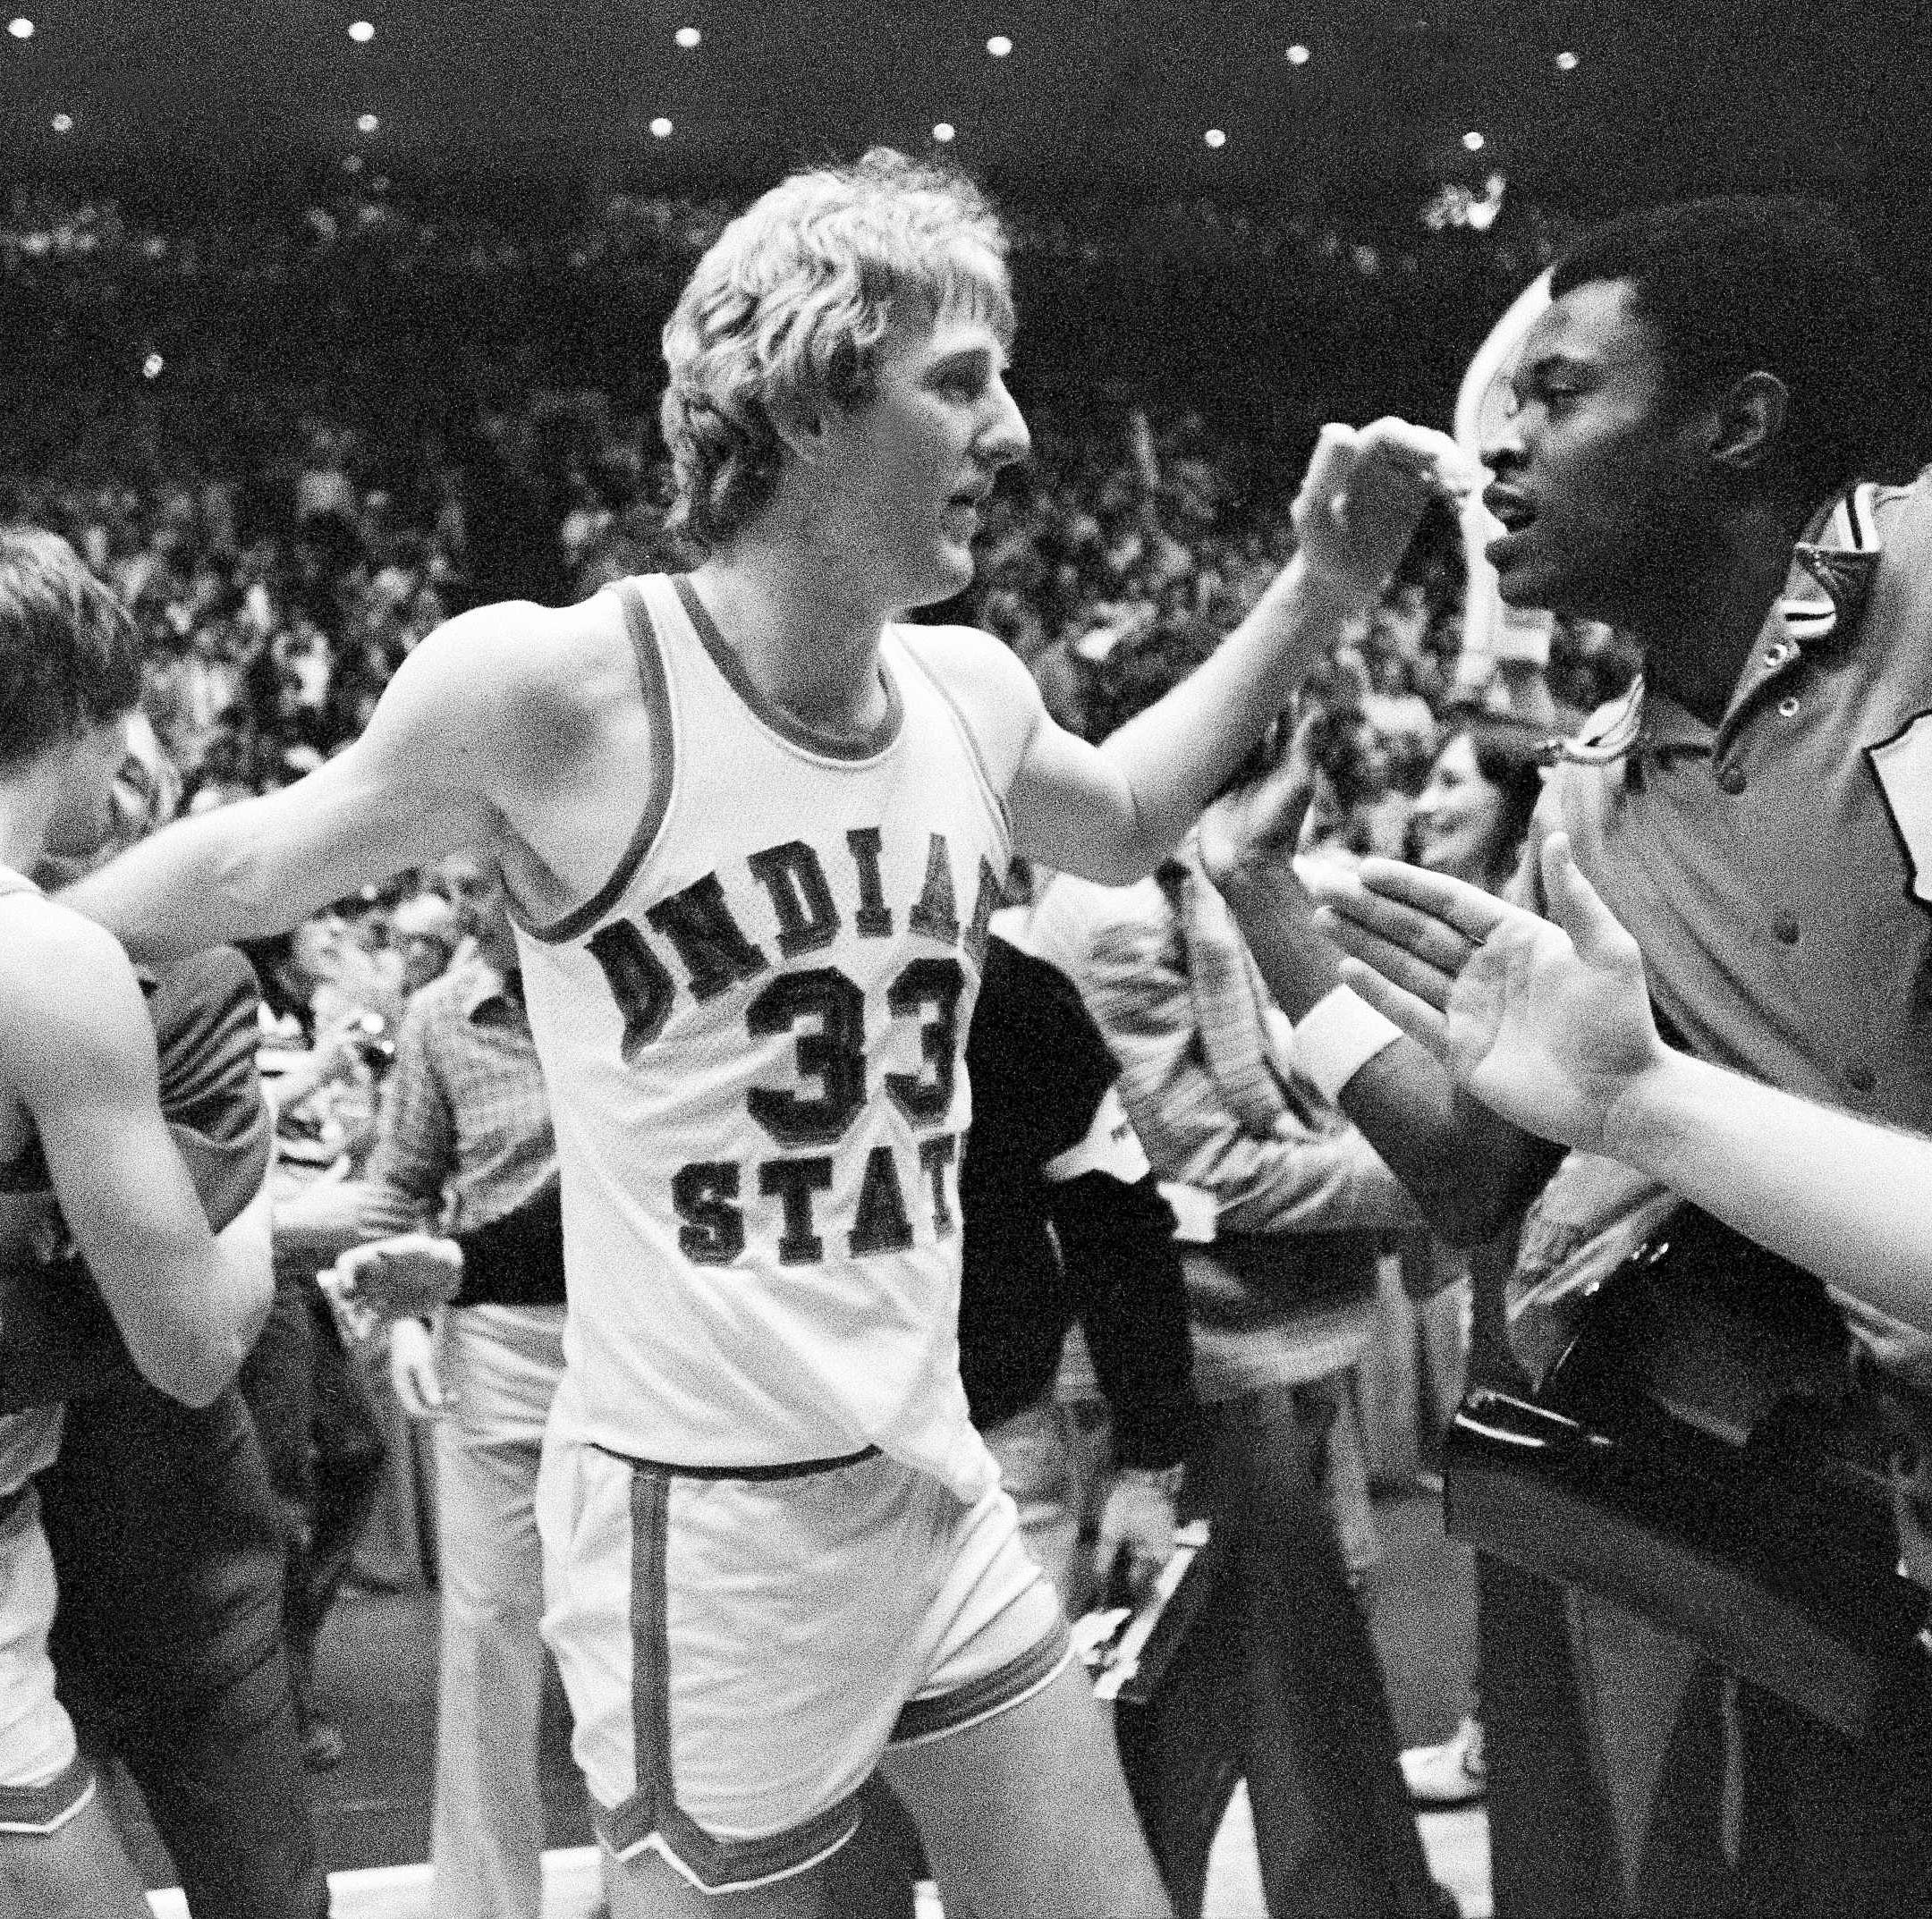 40 years later, Indiana State celebrates 1979 national runner-up team